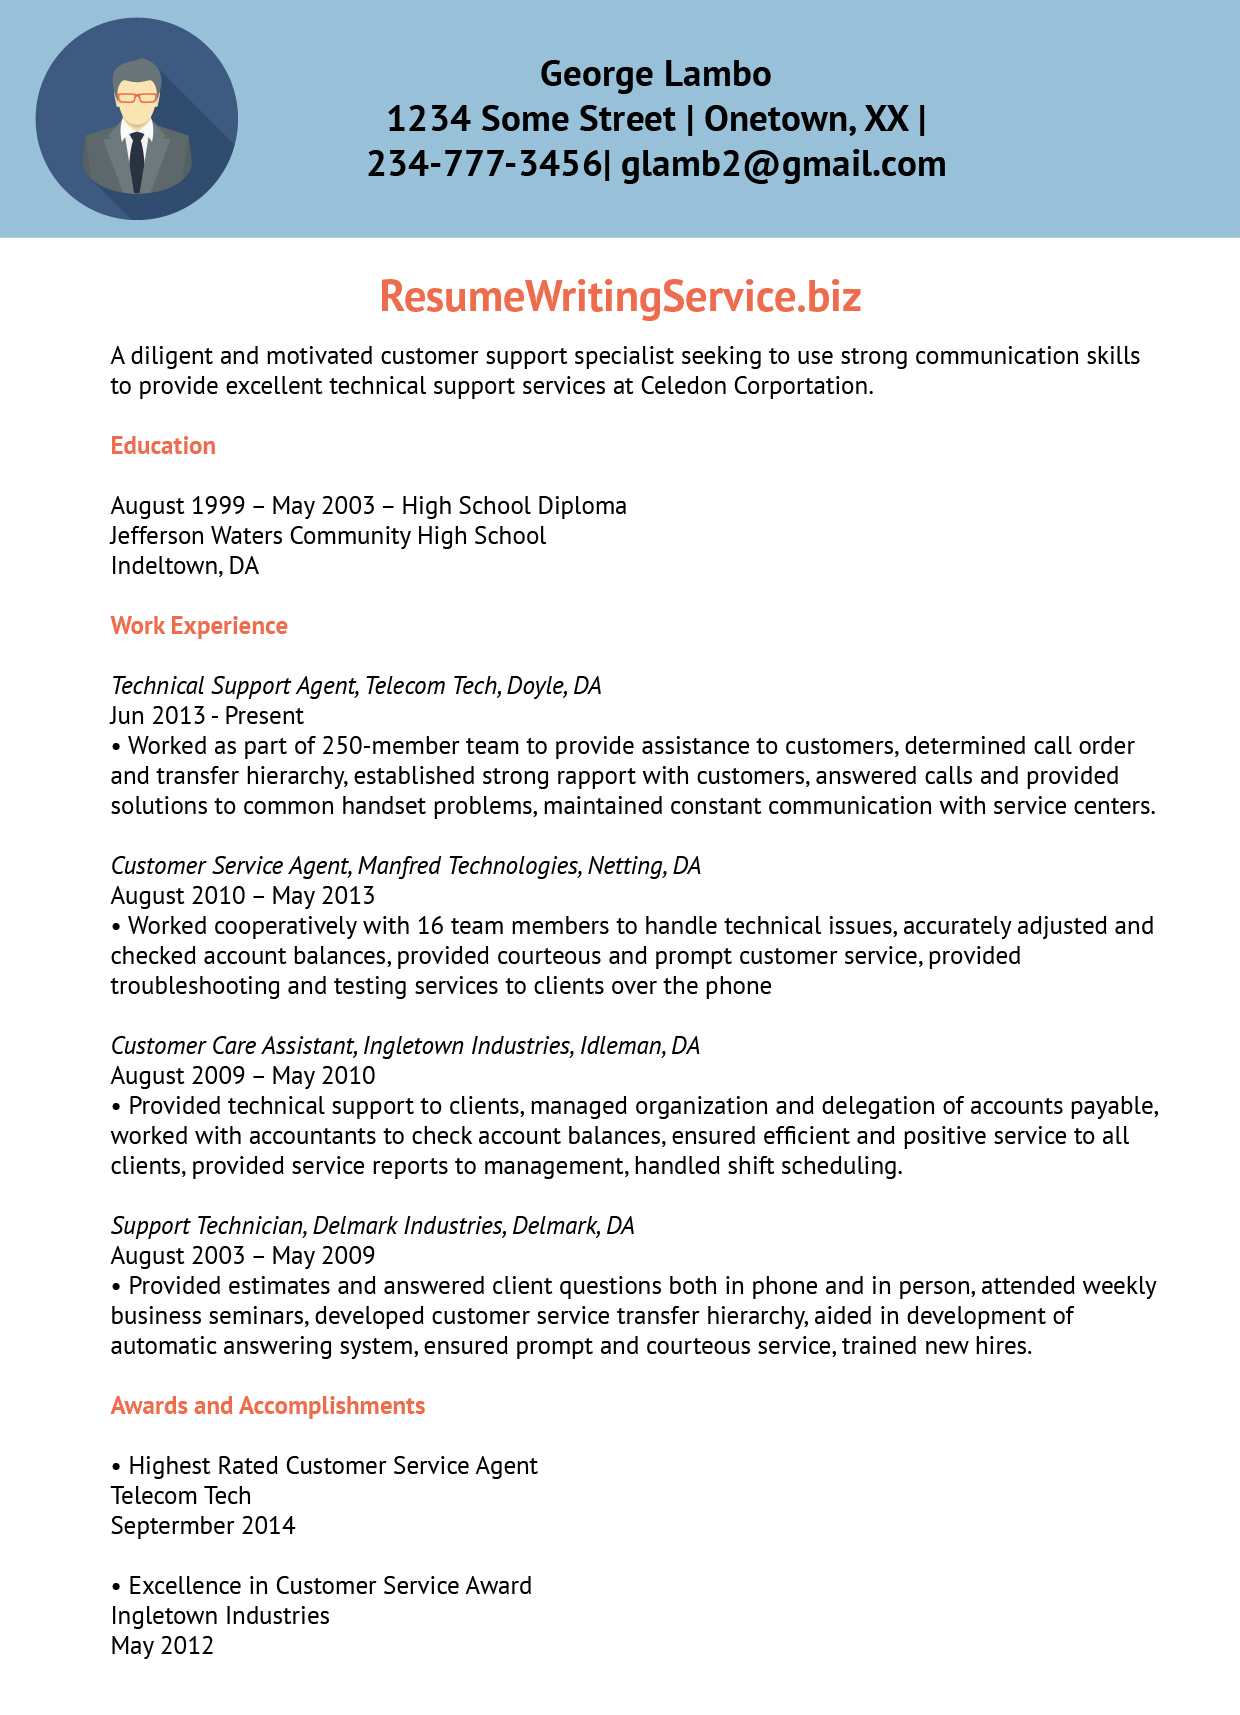 San Diego Resume Writing Service Experts - Resume Target